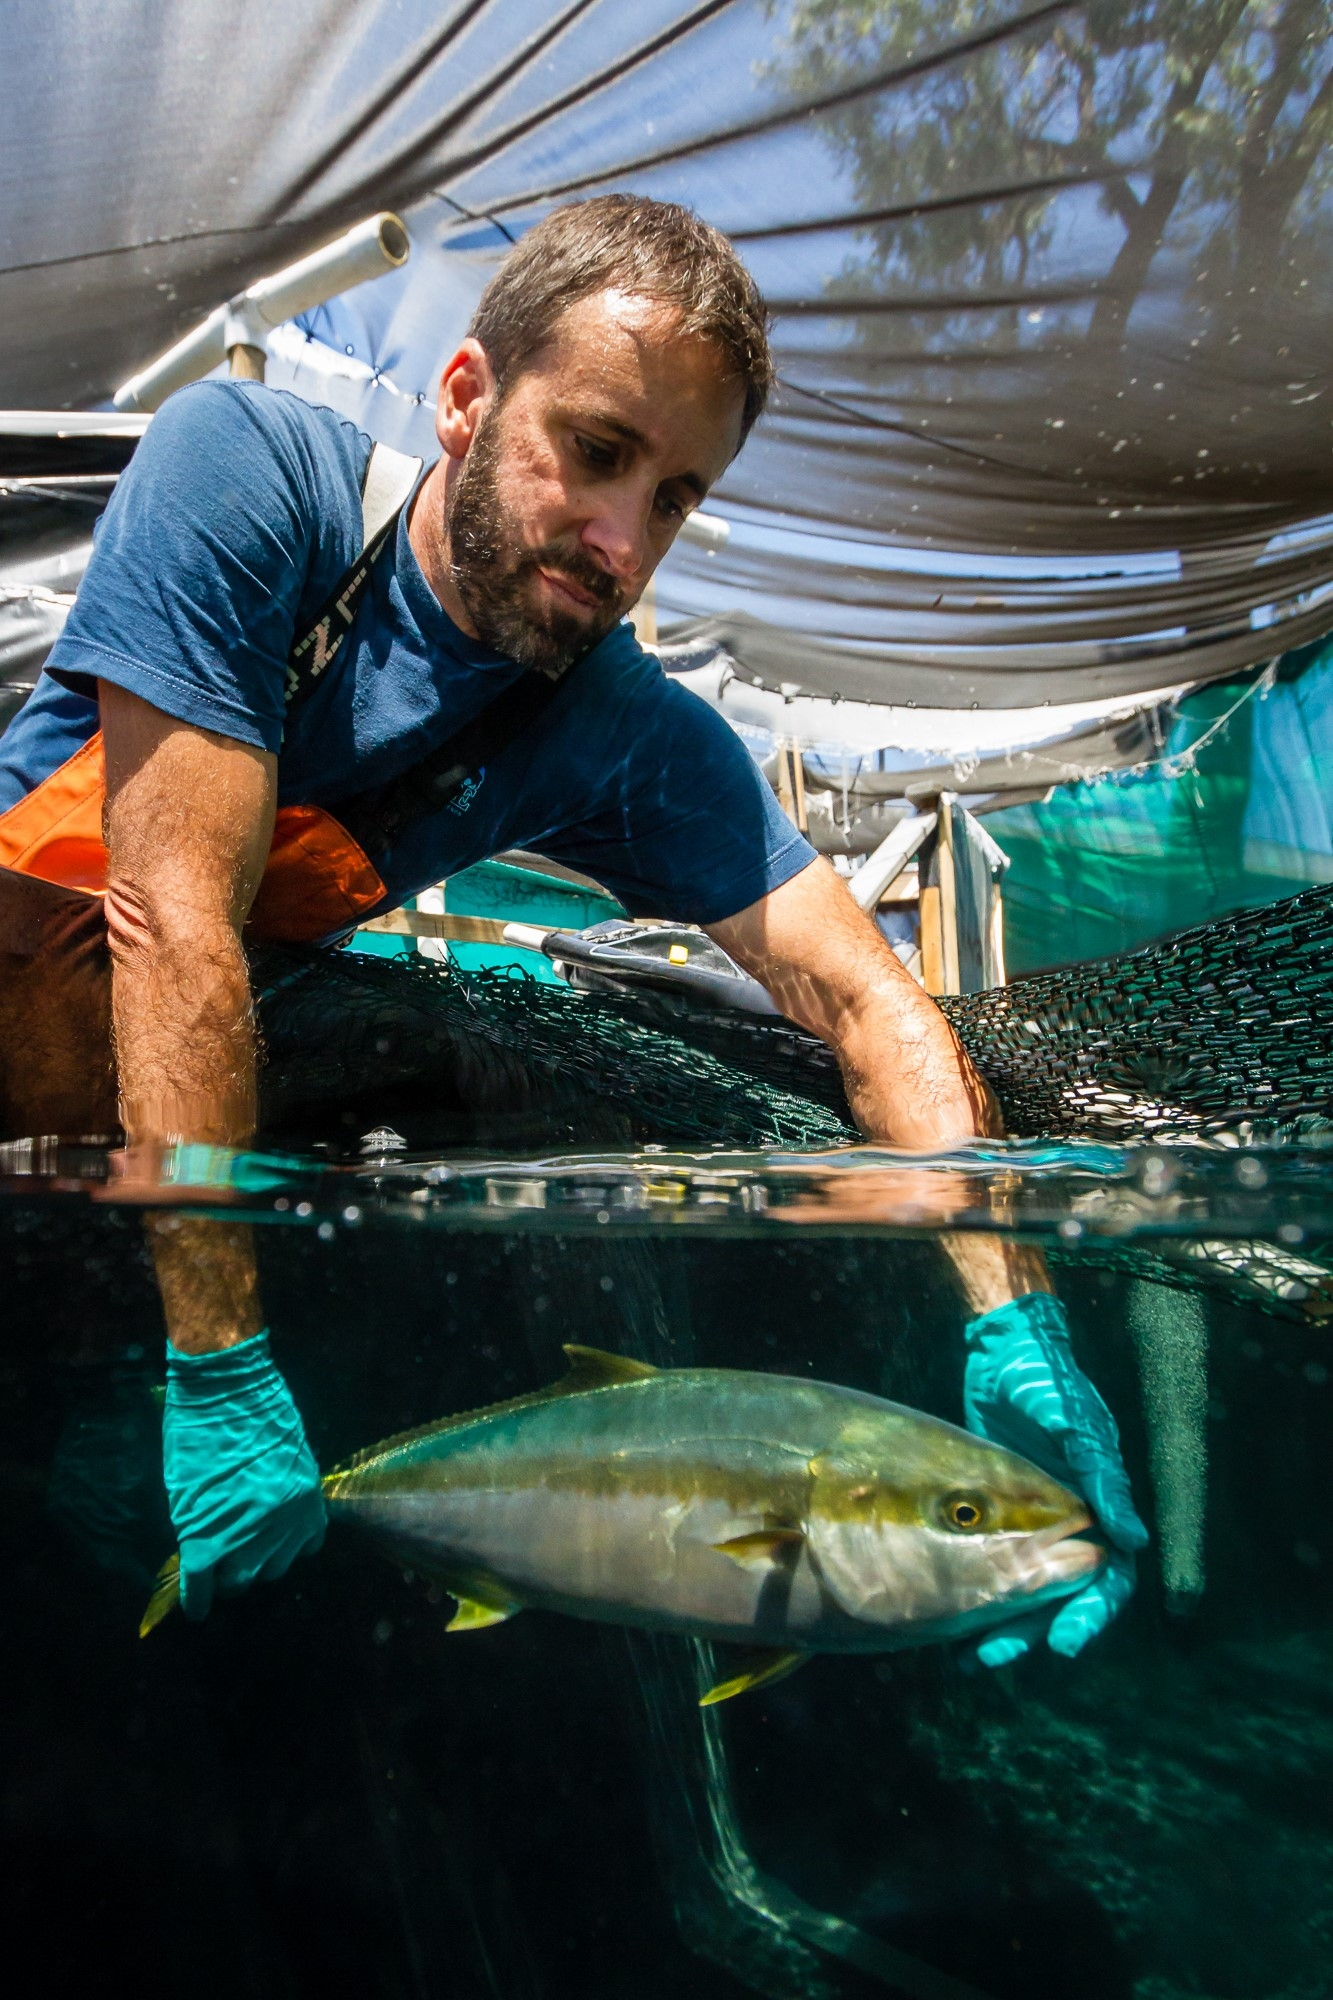 A Hubbs SeaWorld Research Institute staff member places broodstock of California yellowtail in its tank. (Photo courtesy of Hubbs SeaWorld Research Institute)